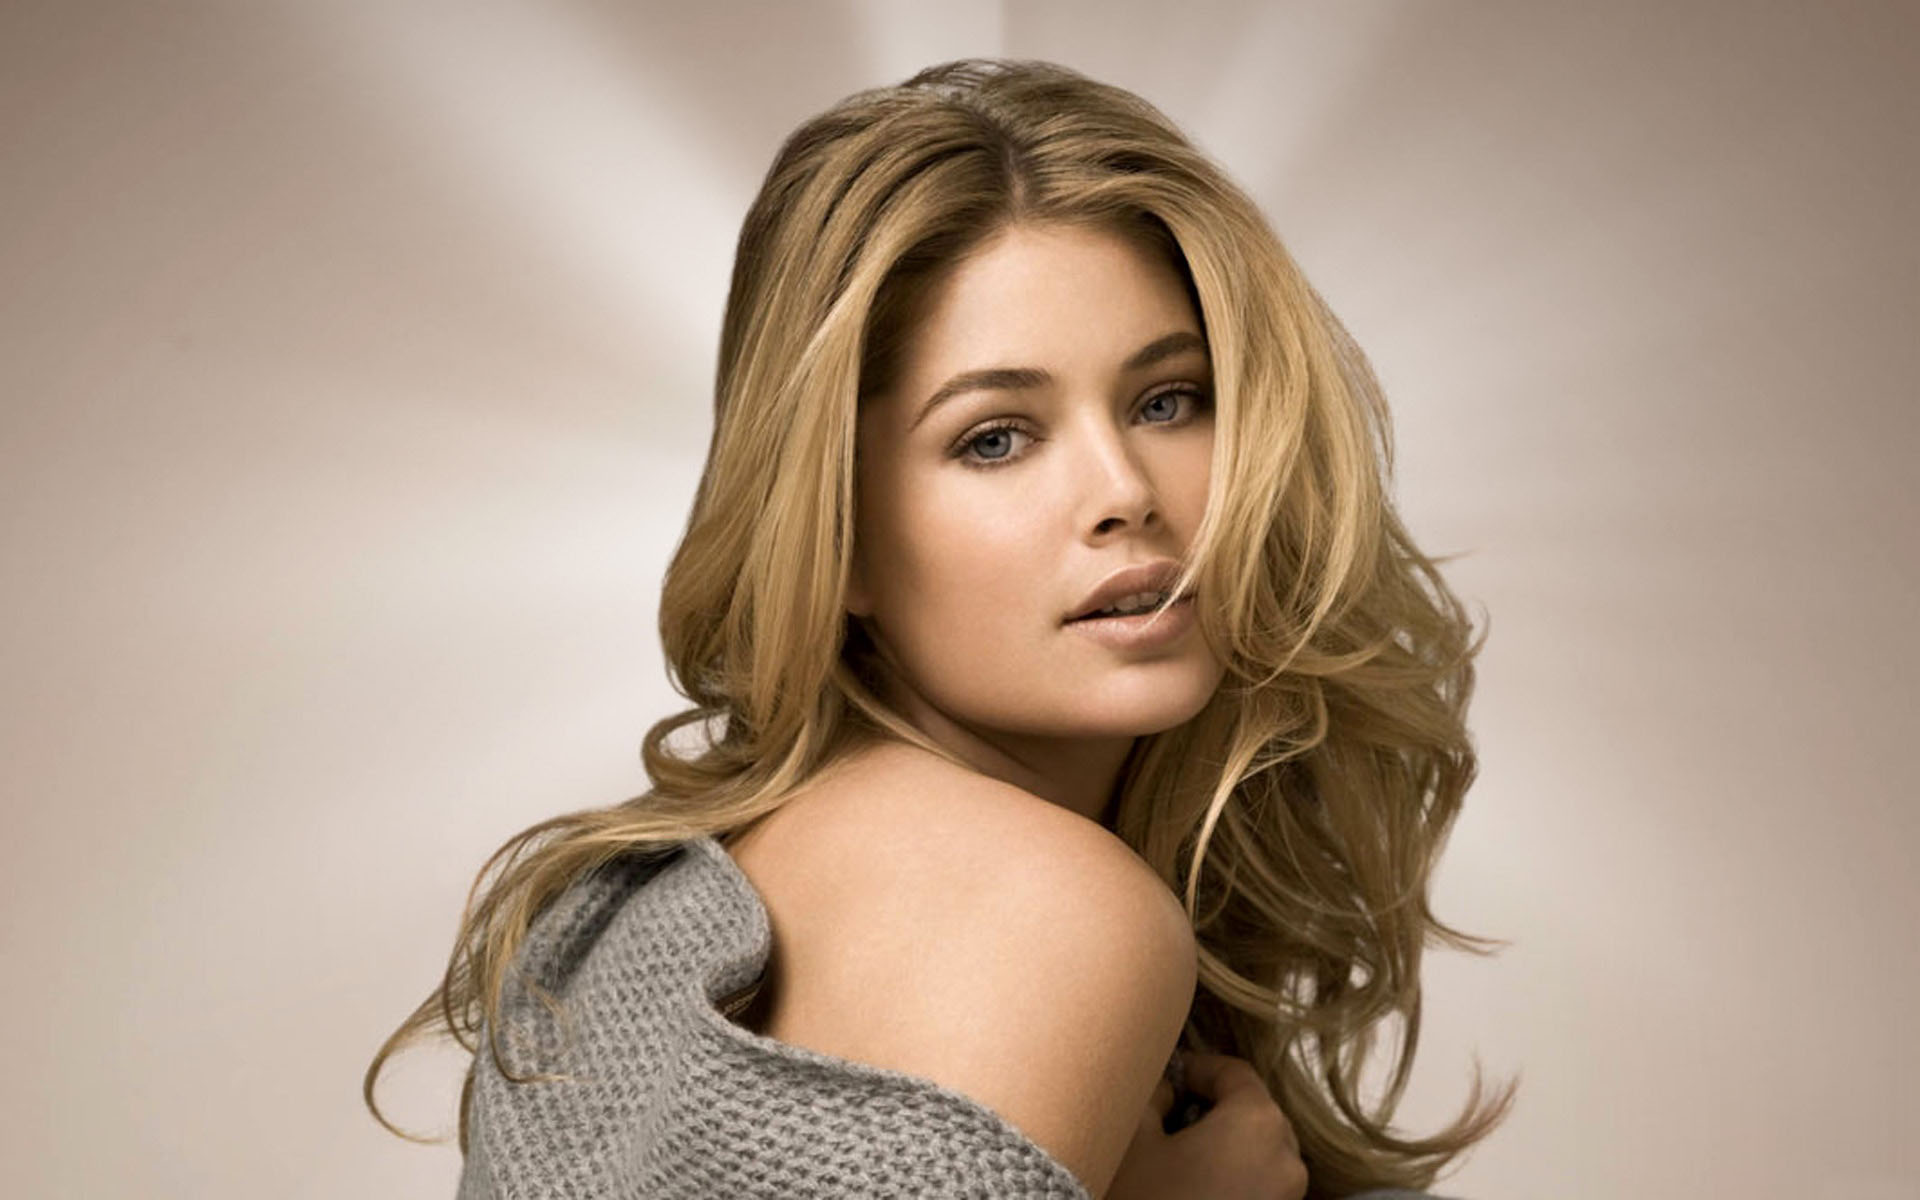 Doutzen Kroes Wallpapers 28114 1400x900 px